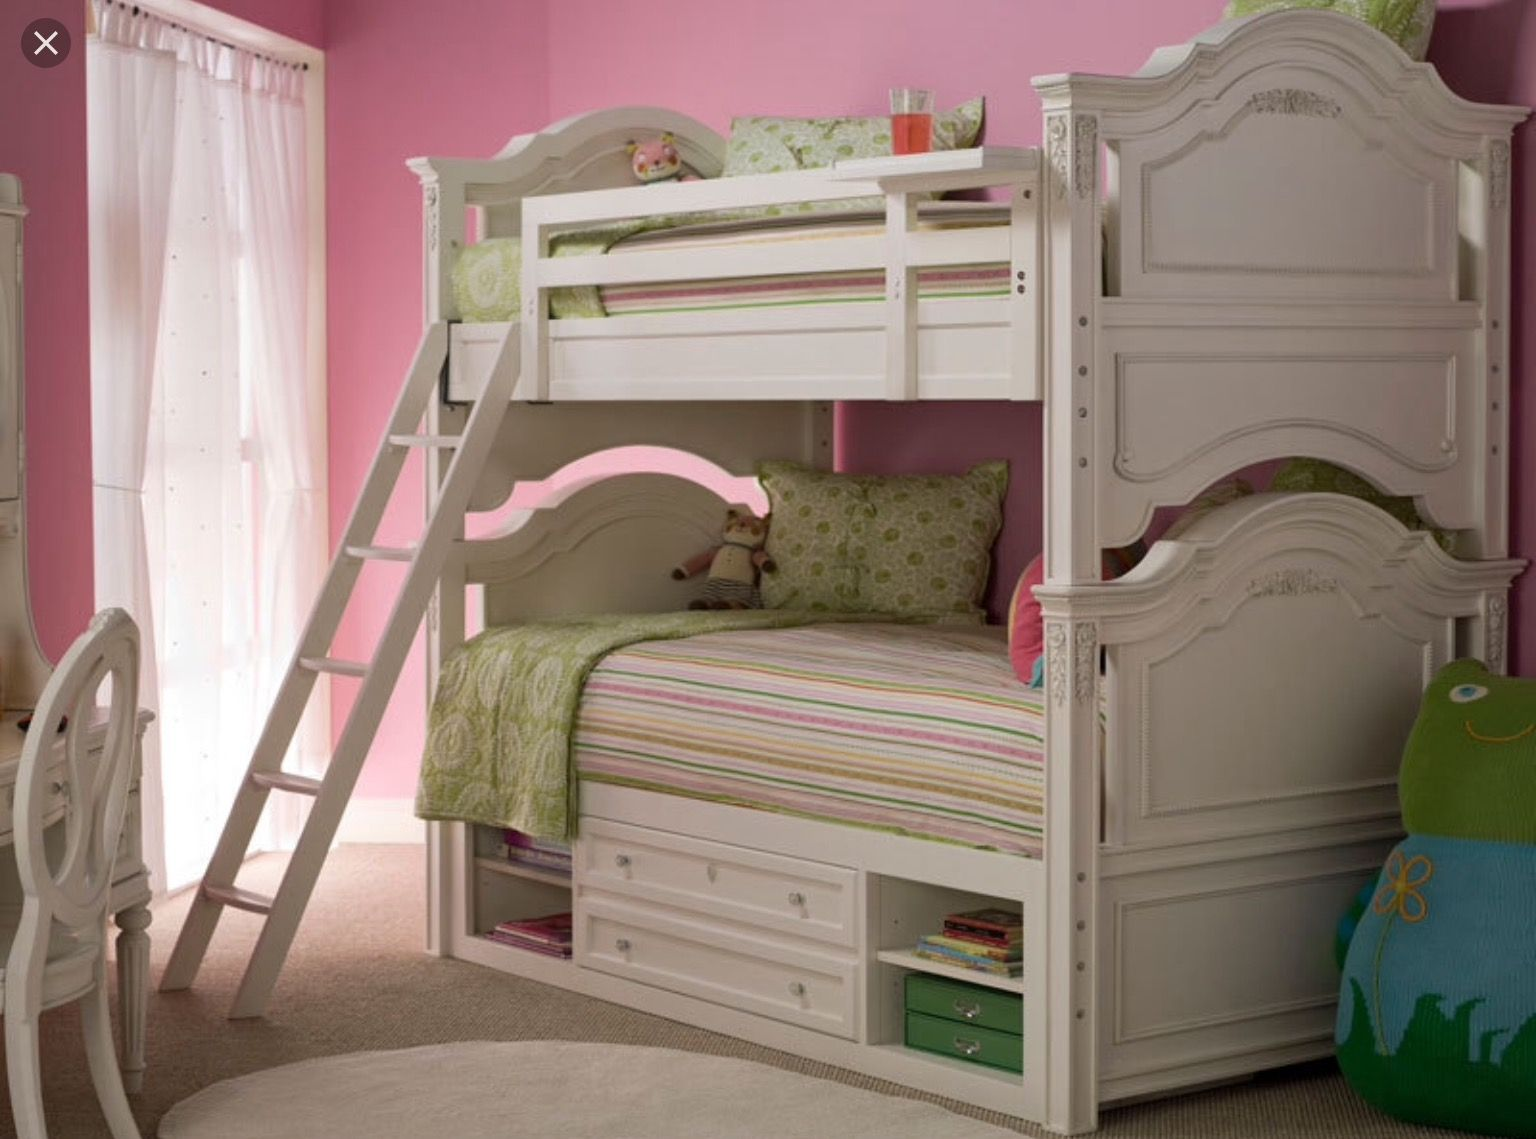 Comment if you think this bed is to die for itus so awesome i love